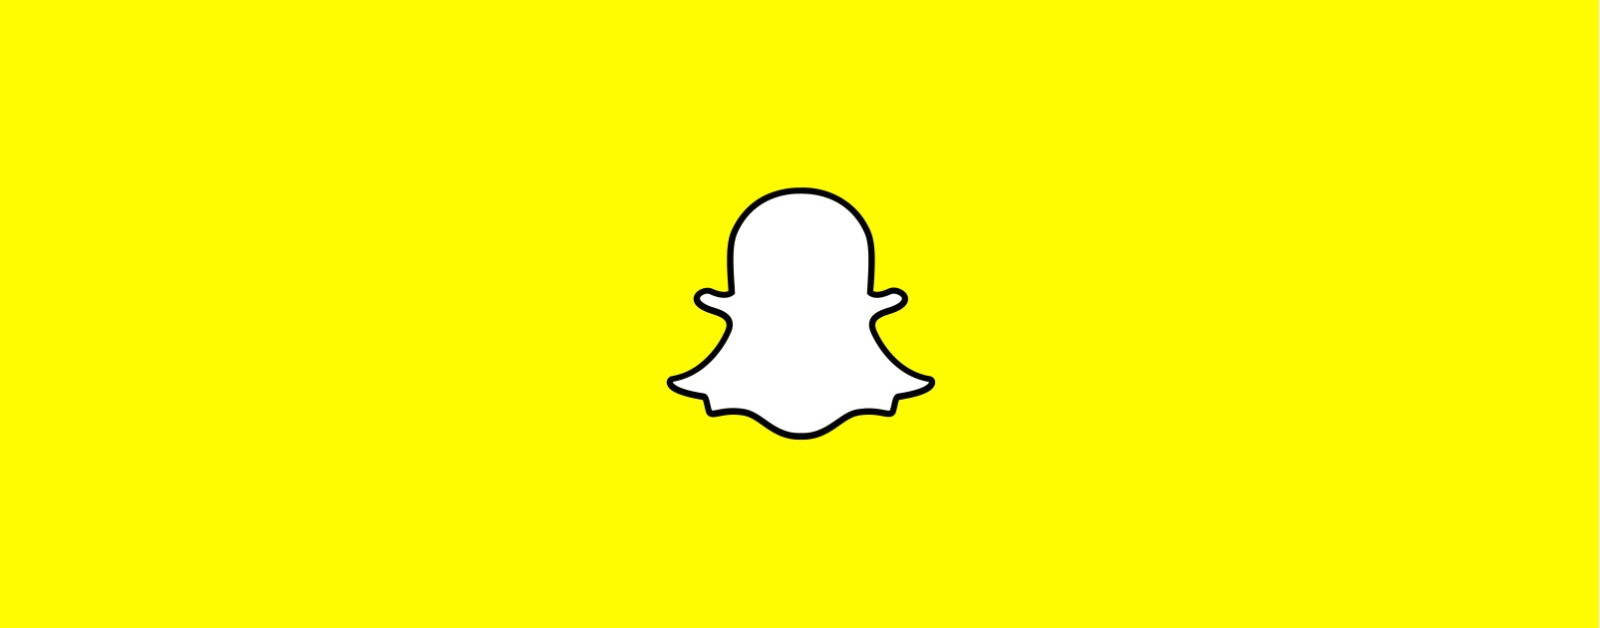 Snapchat Adds 2 New Features: Tint Brush and Multi.